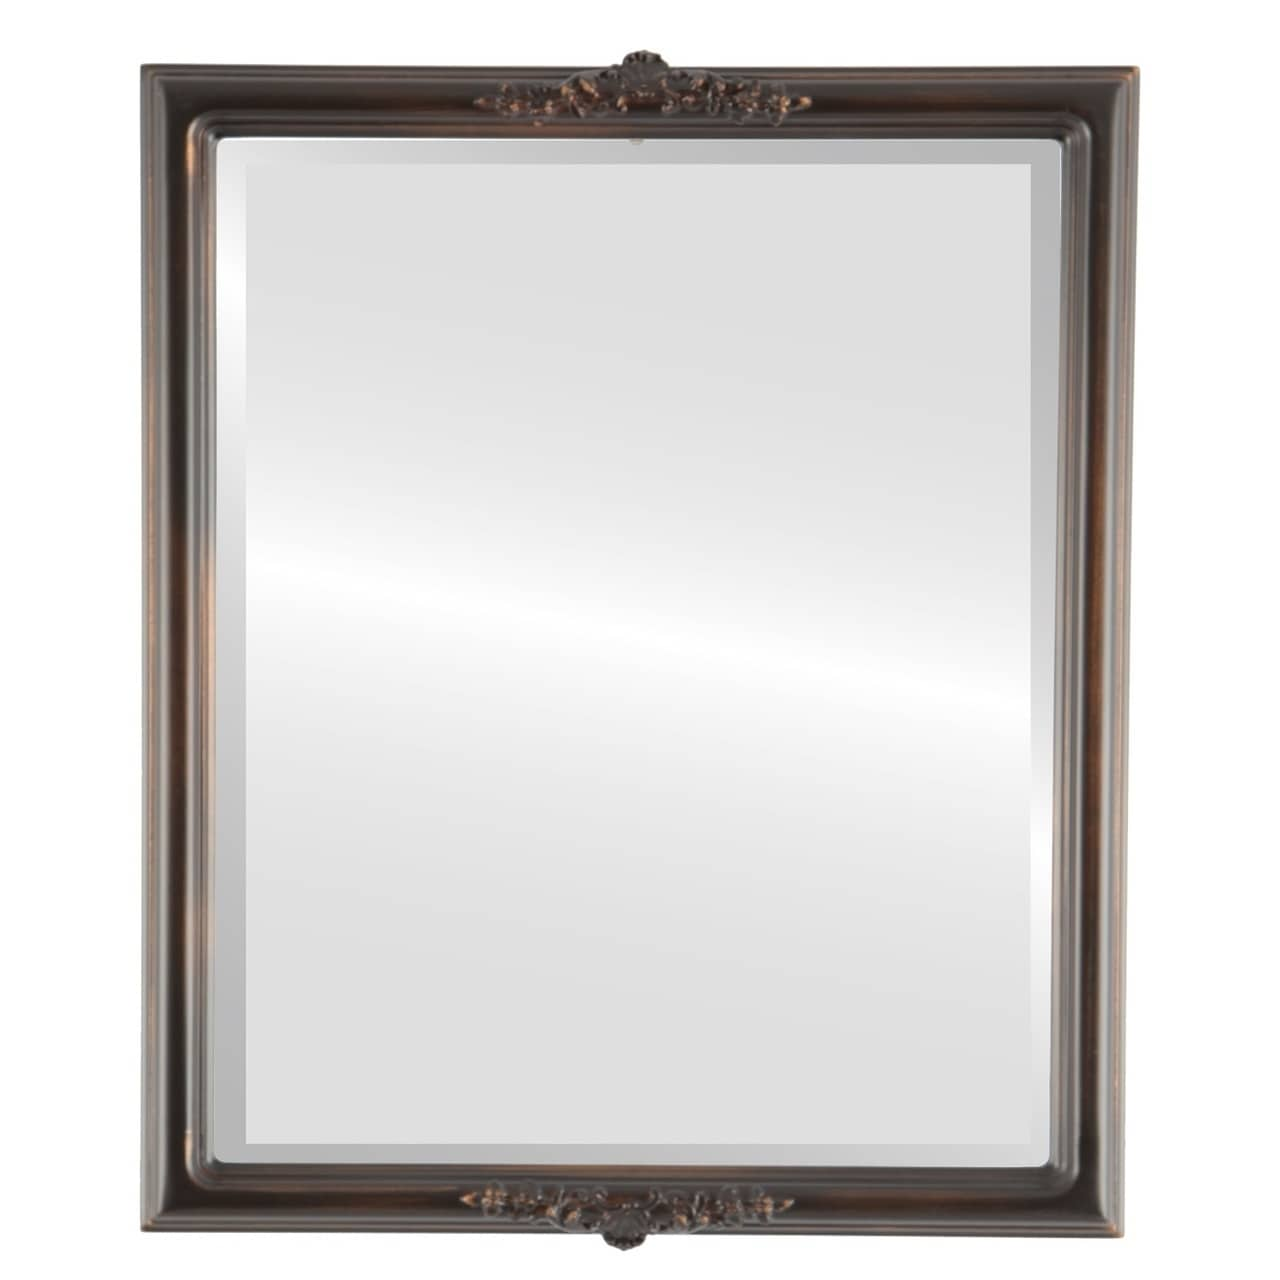 Contessa Framed Rectangle Mirror in Rubbed Bronze - Antique Bronze (13x17)